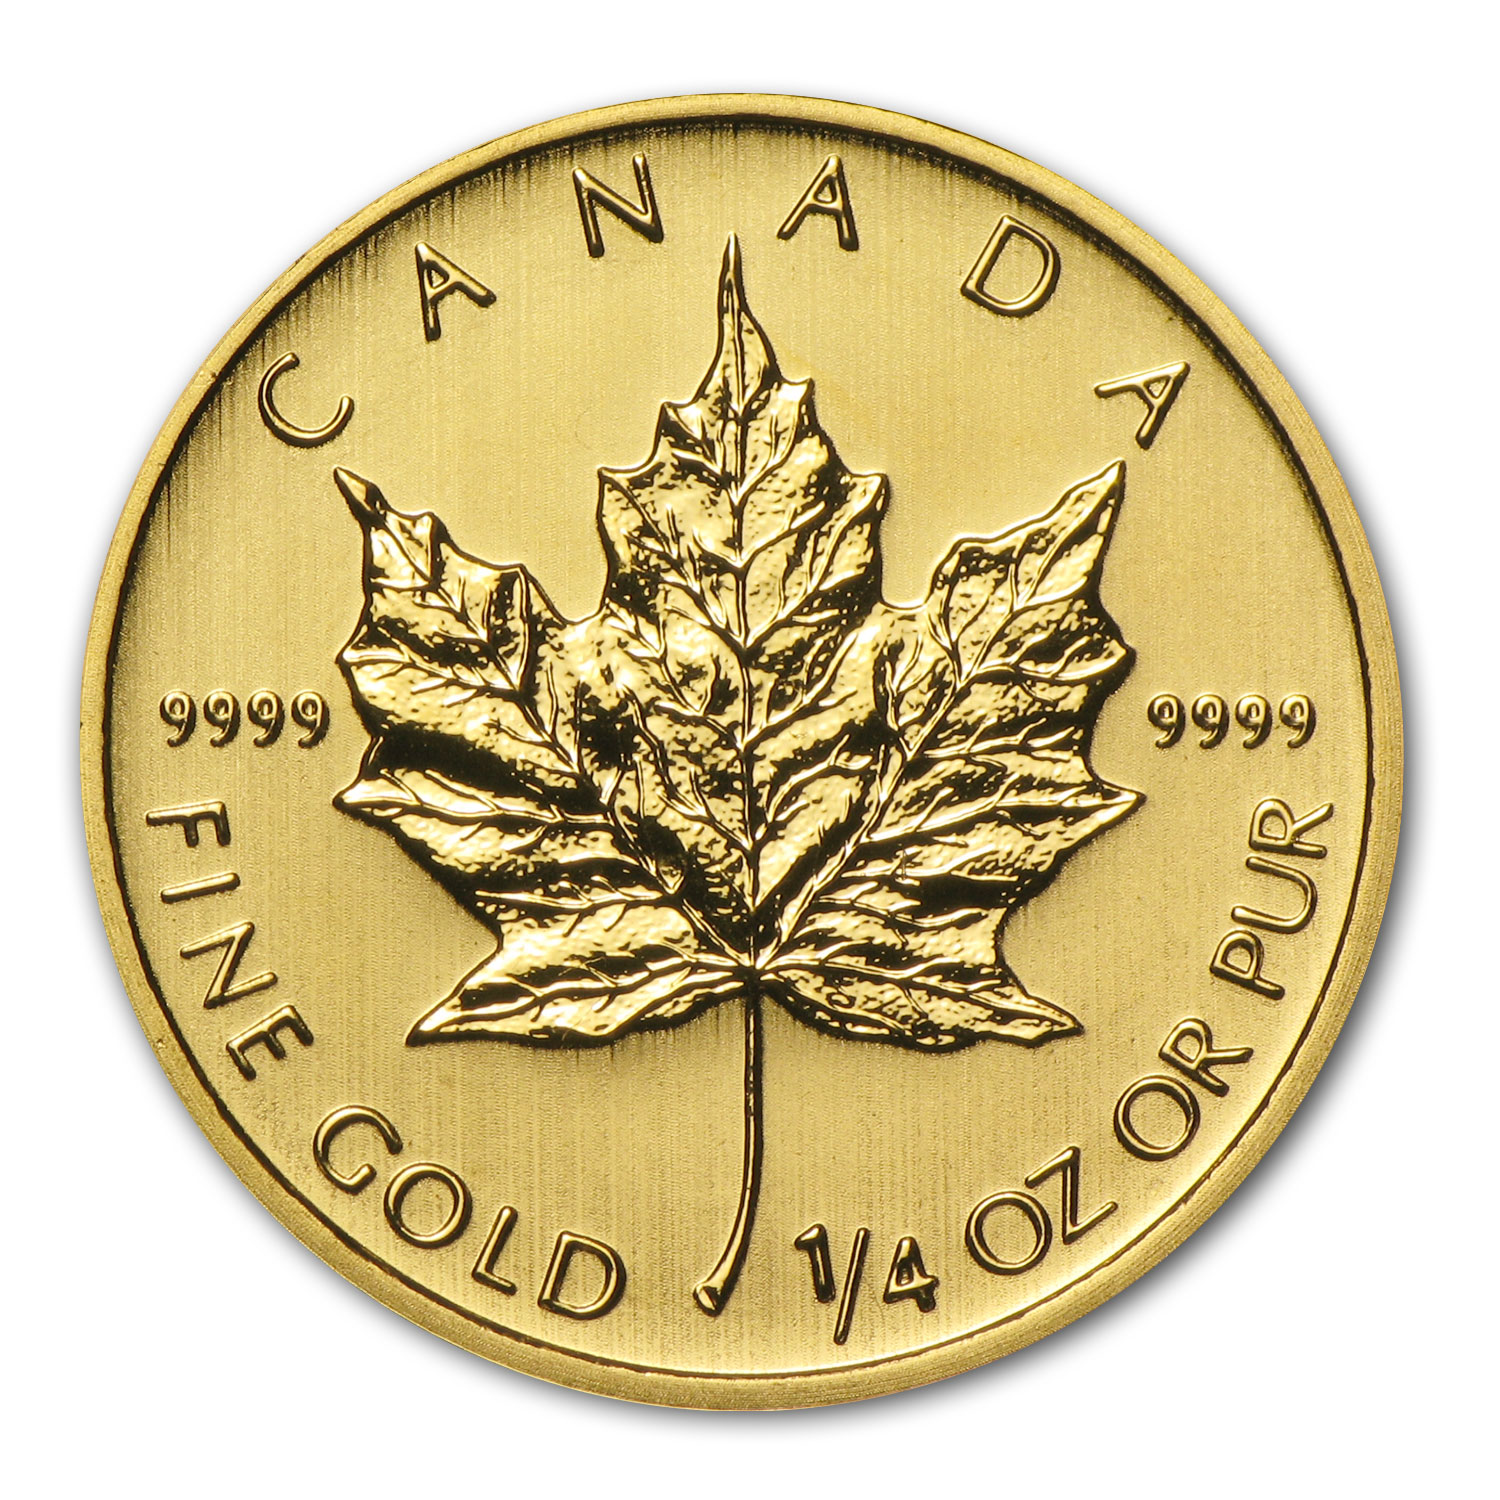 2014 Canada 1/4 oz Gold Maple Leaf BU